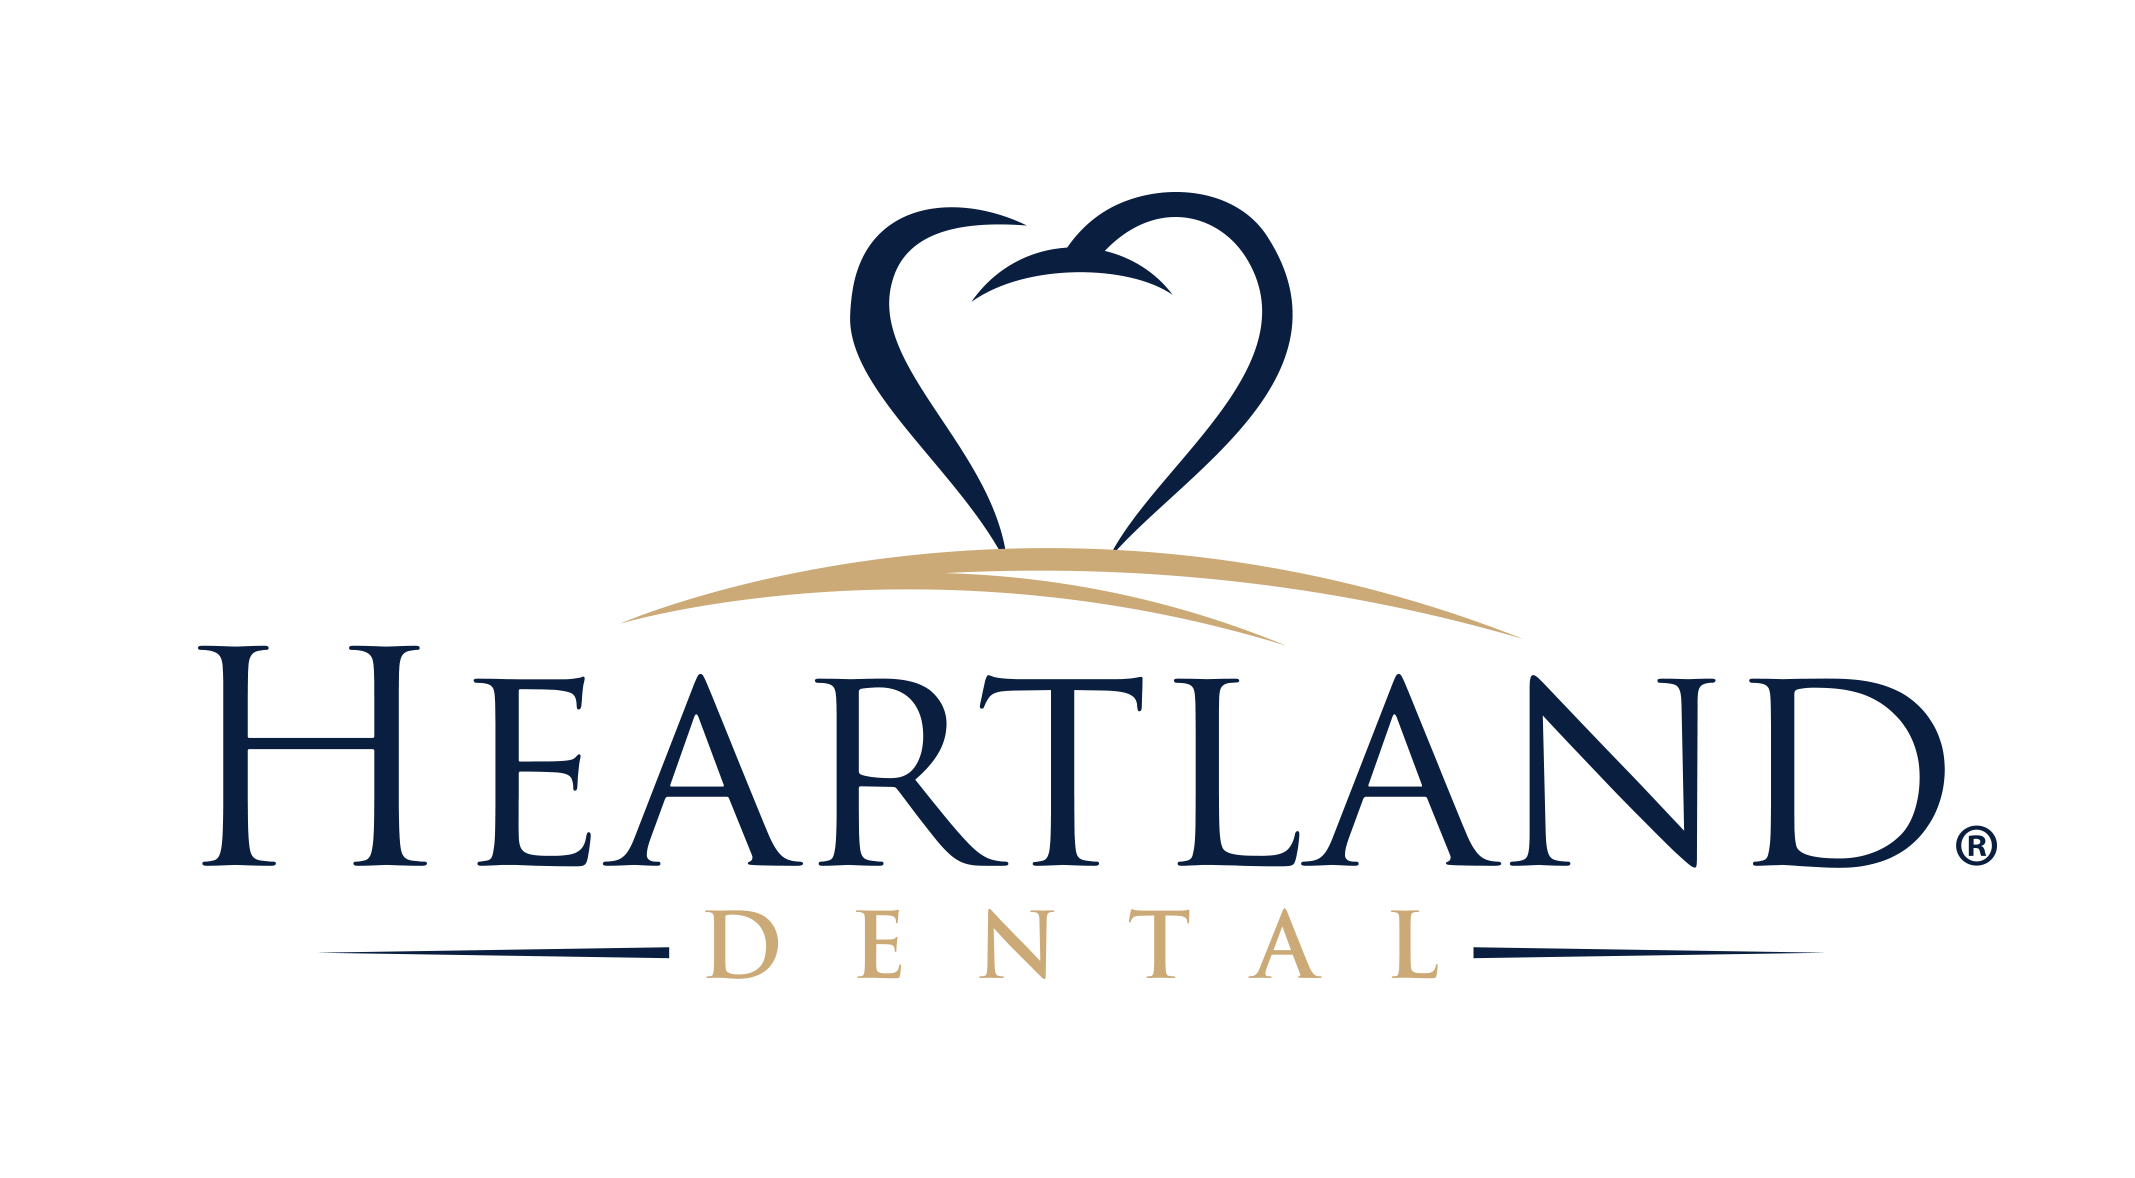 Heartland-Dental-2X9A0620-1